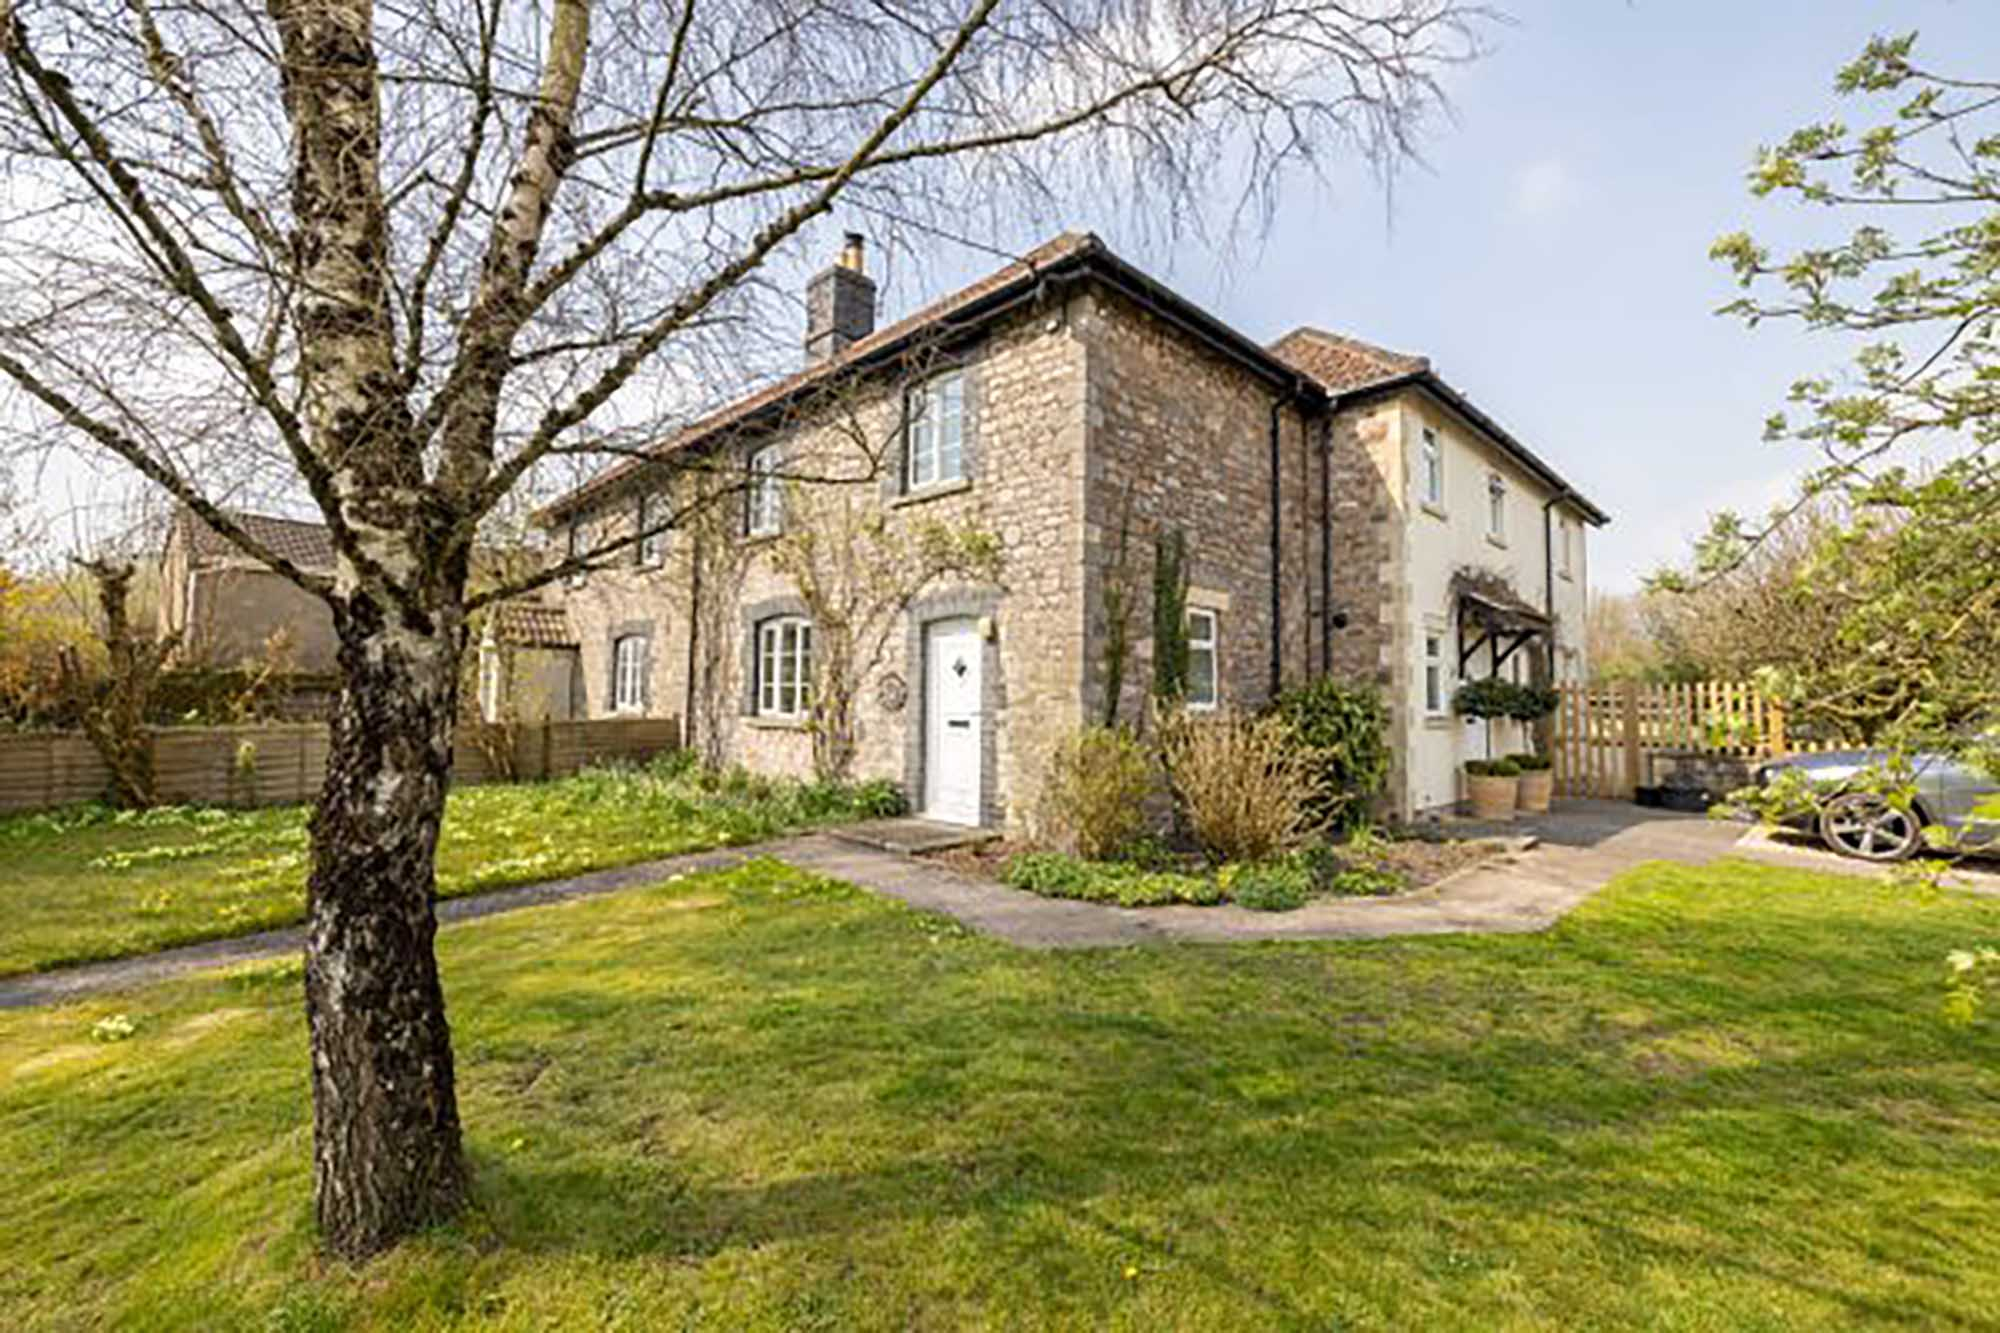 Nr Frome, 4 bed cottage, garden, outbuilding